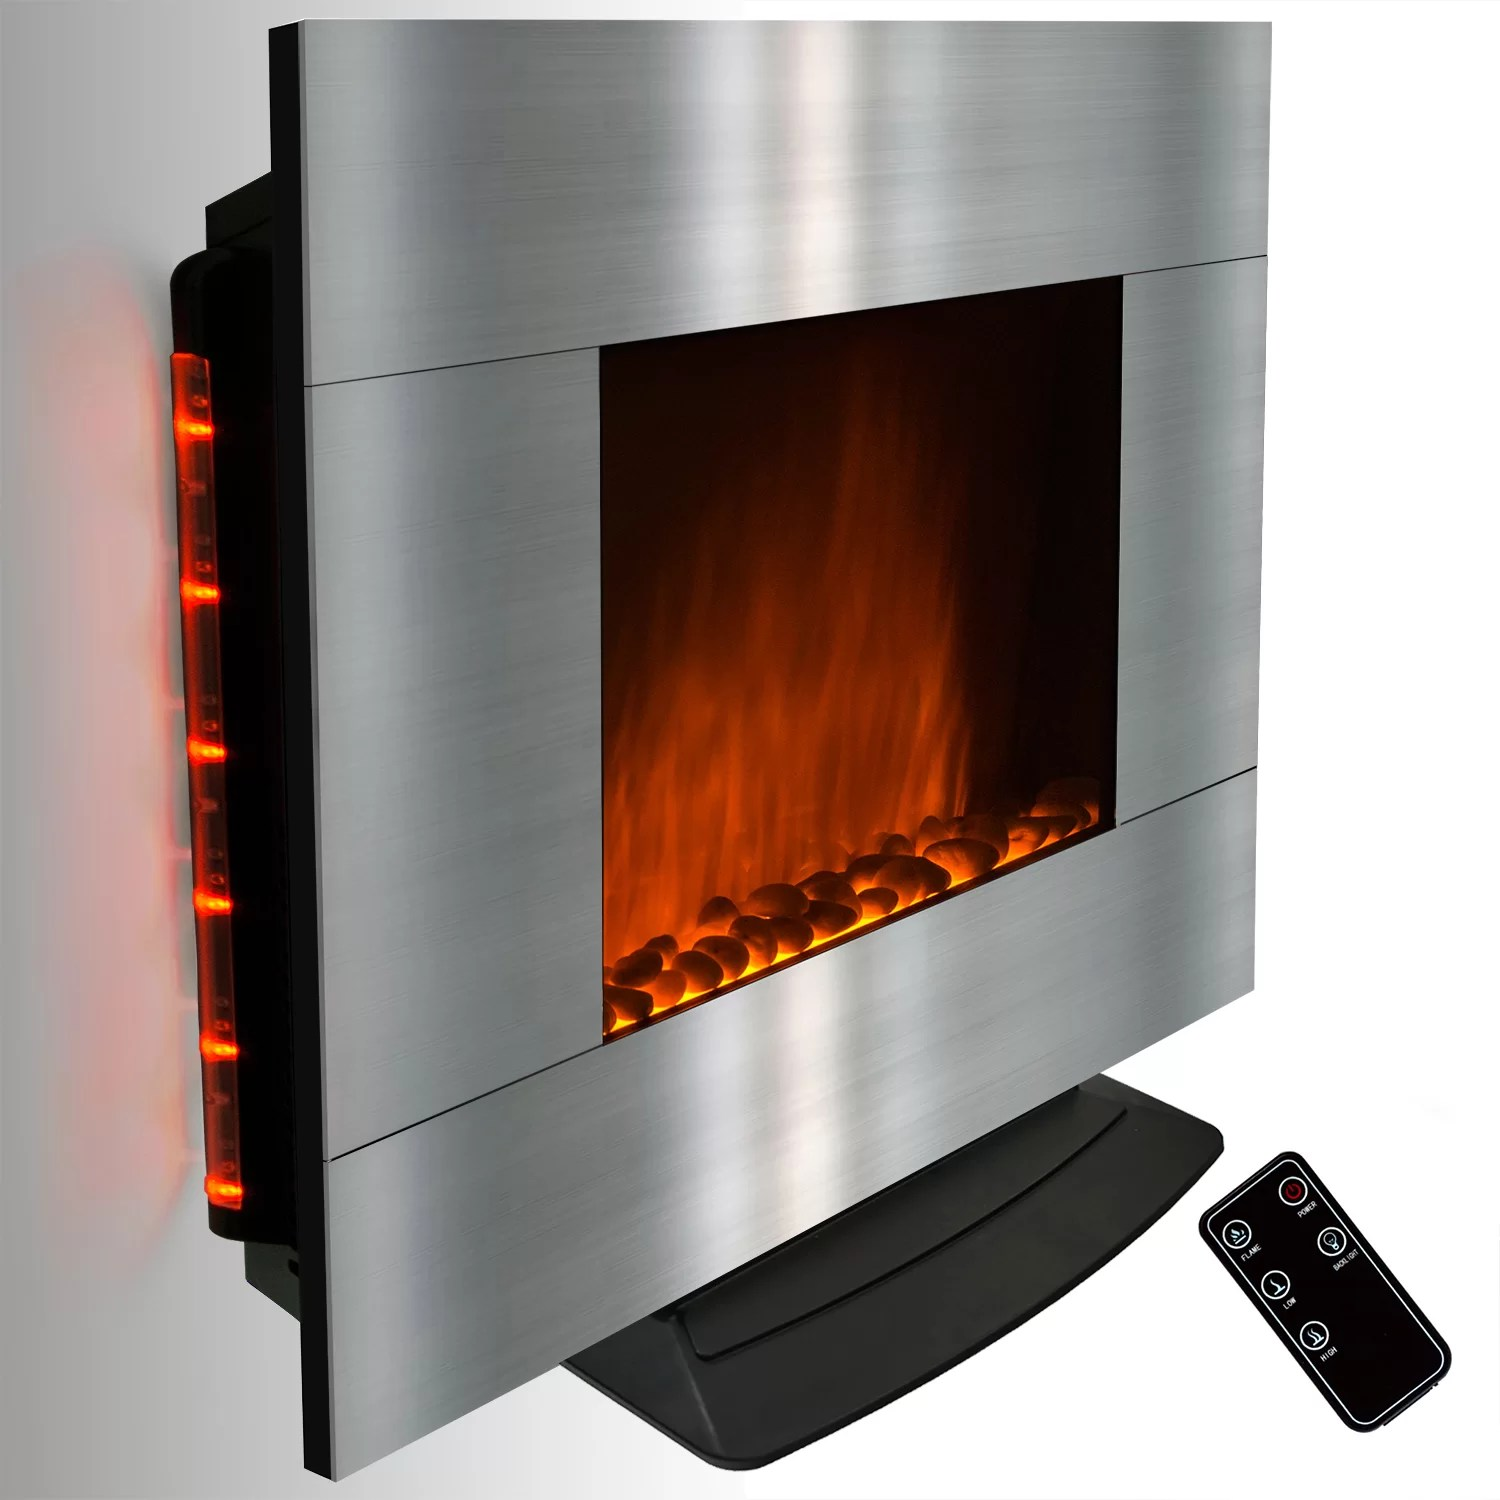 Stainless Steel Fireplace Akdy Freestanding Stainless Steel Electric Fireplace Wayfair